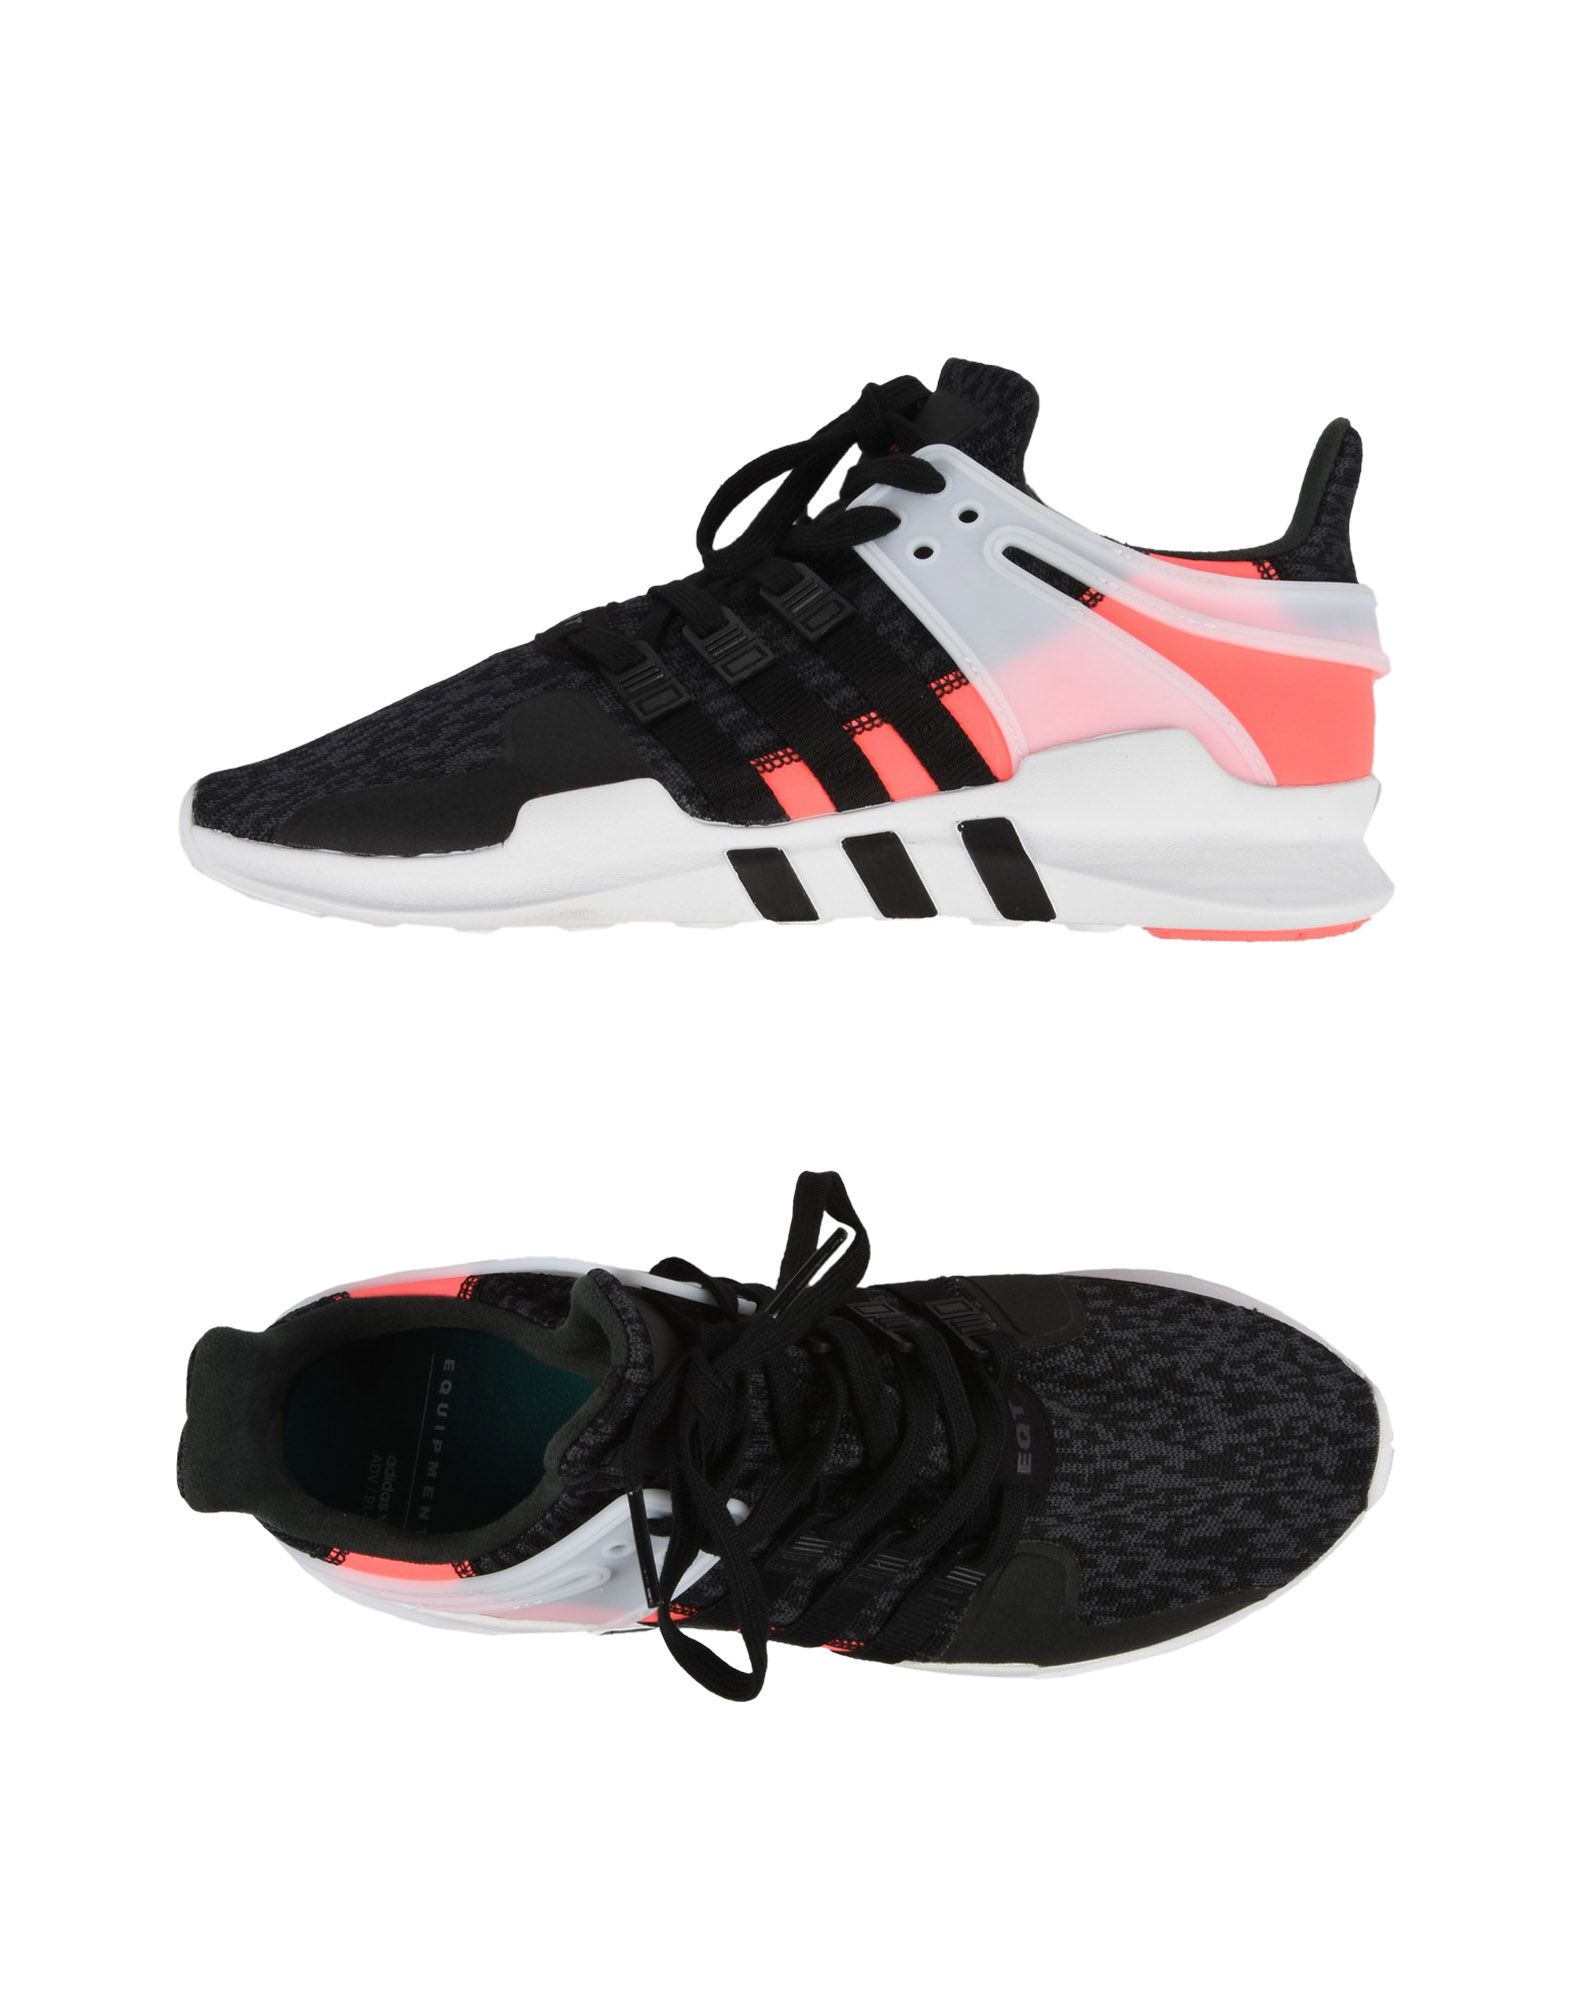 Sneakers Adidas Originals Eqt Support Adv - Uomo - 11205383BE